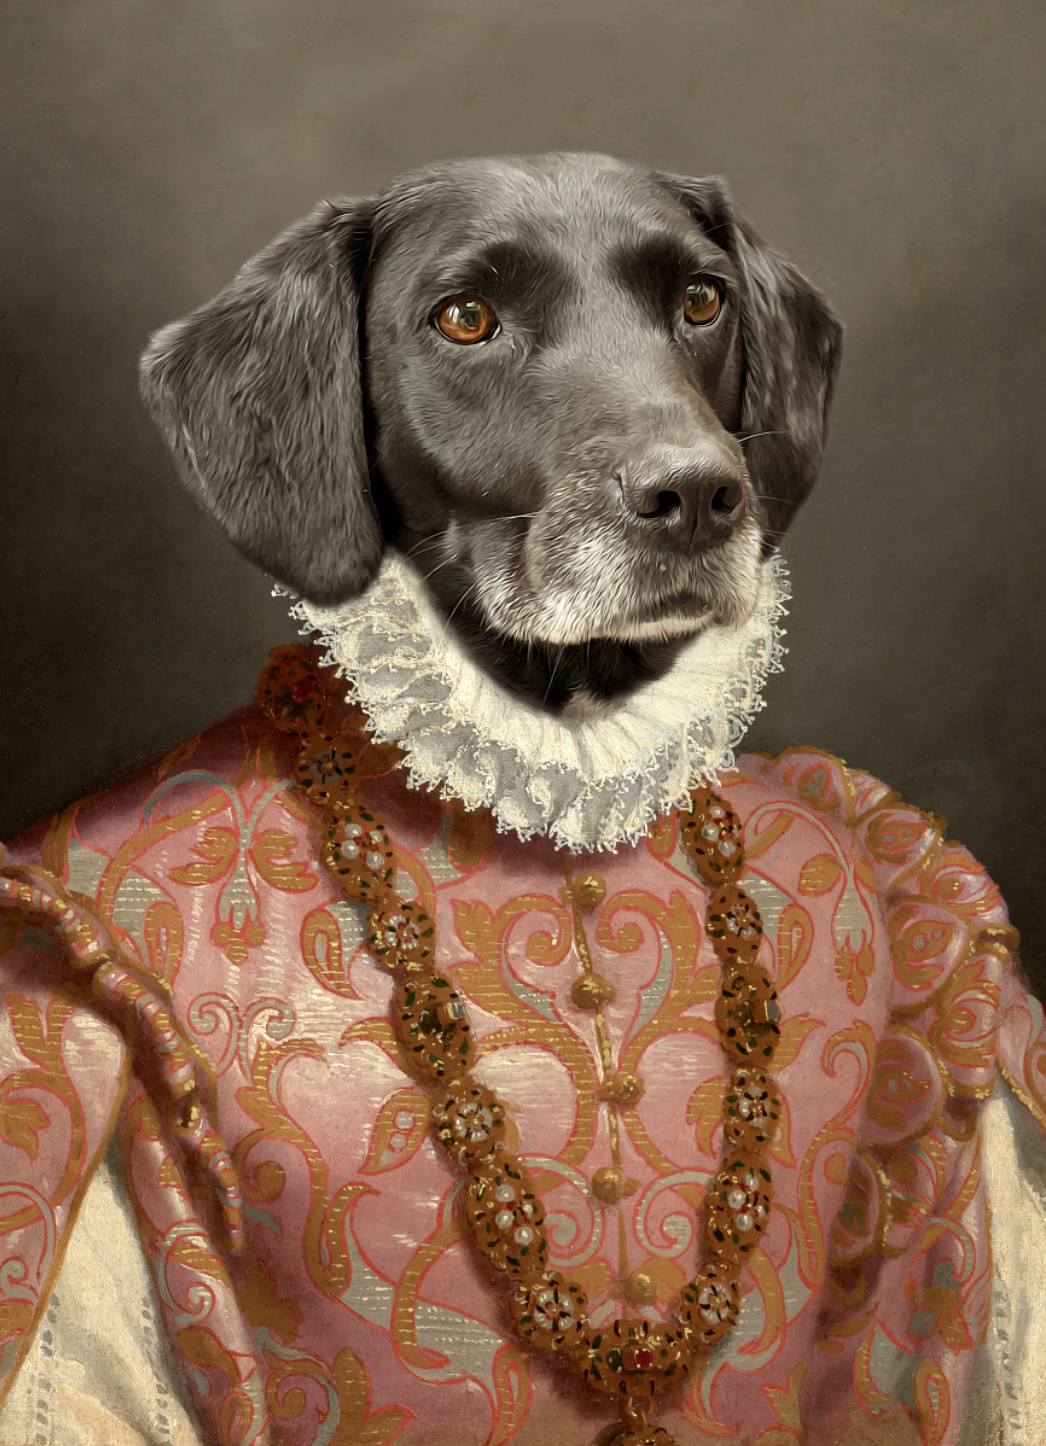 Princess Royal pet portrait